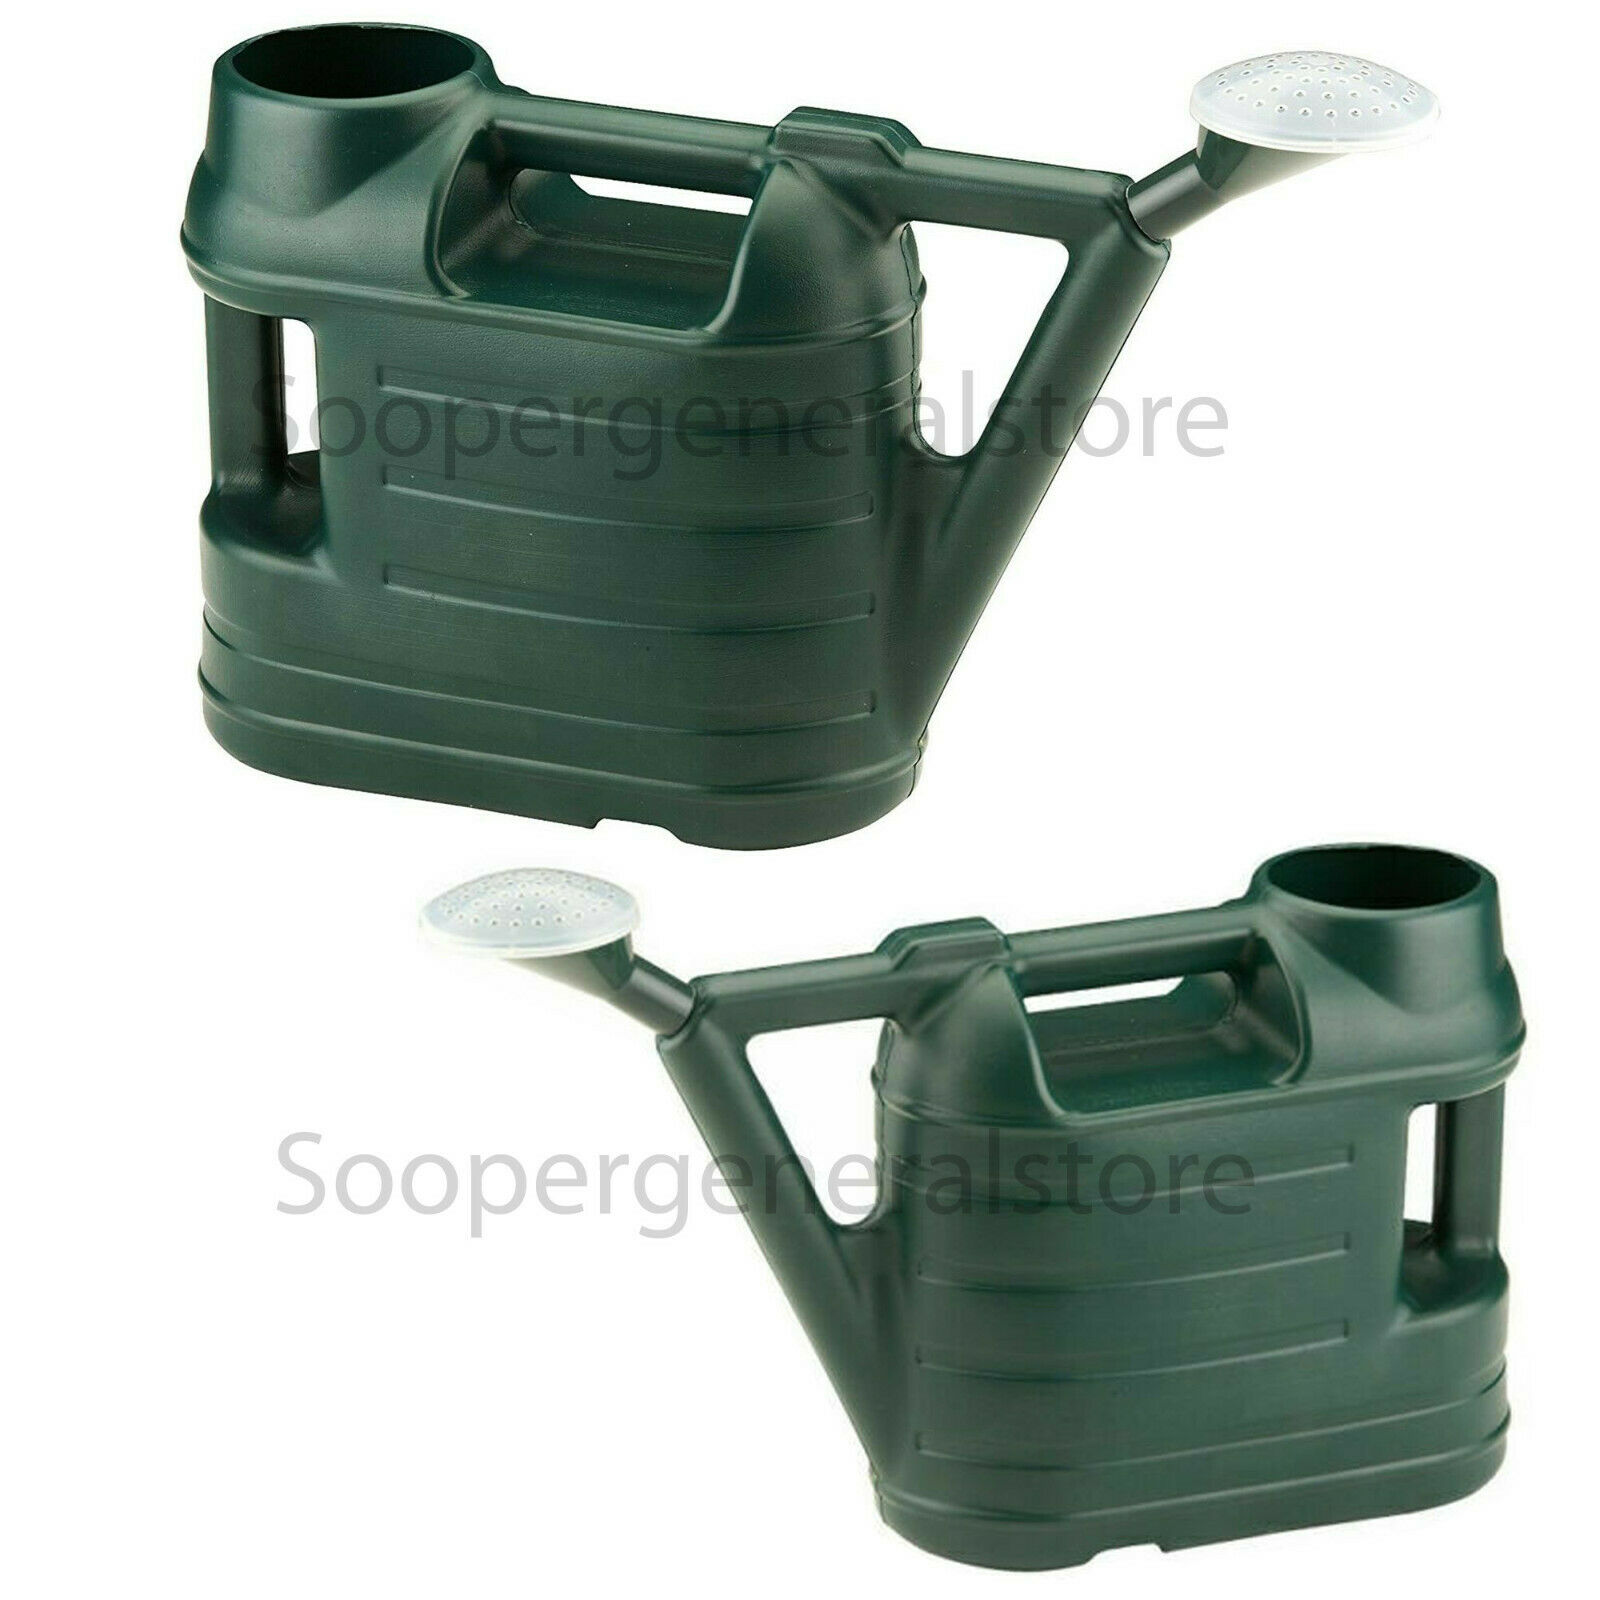 Plants Watering Can Gardening Flower Water Sprinkler Plastic Can Container 6.5 L